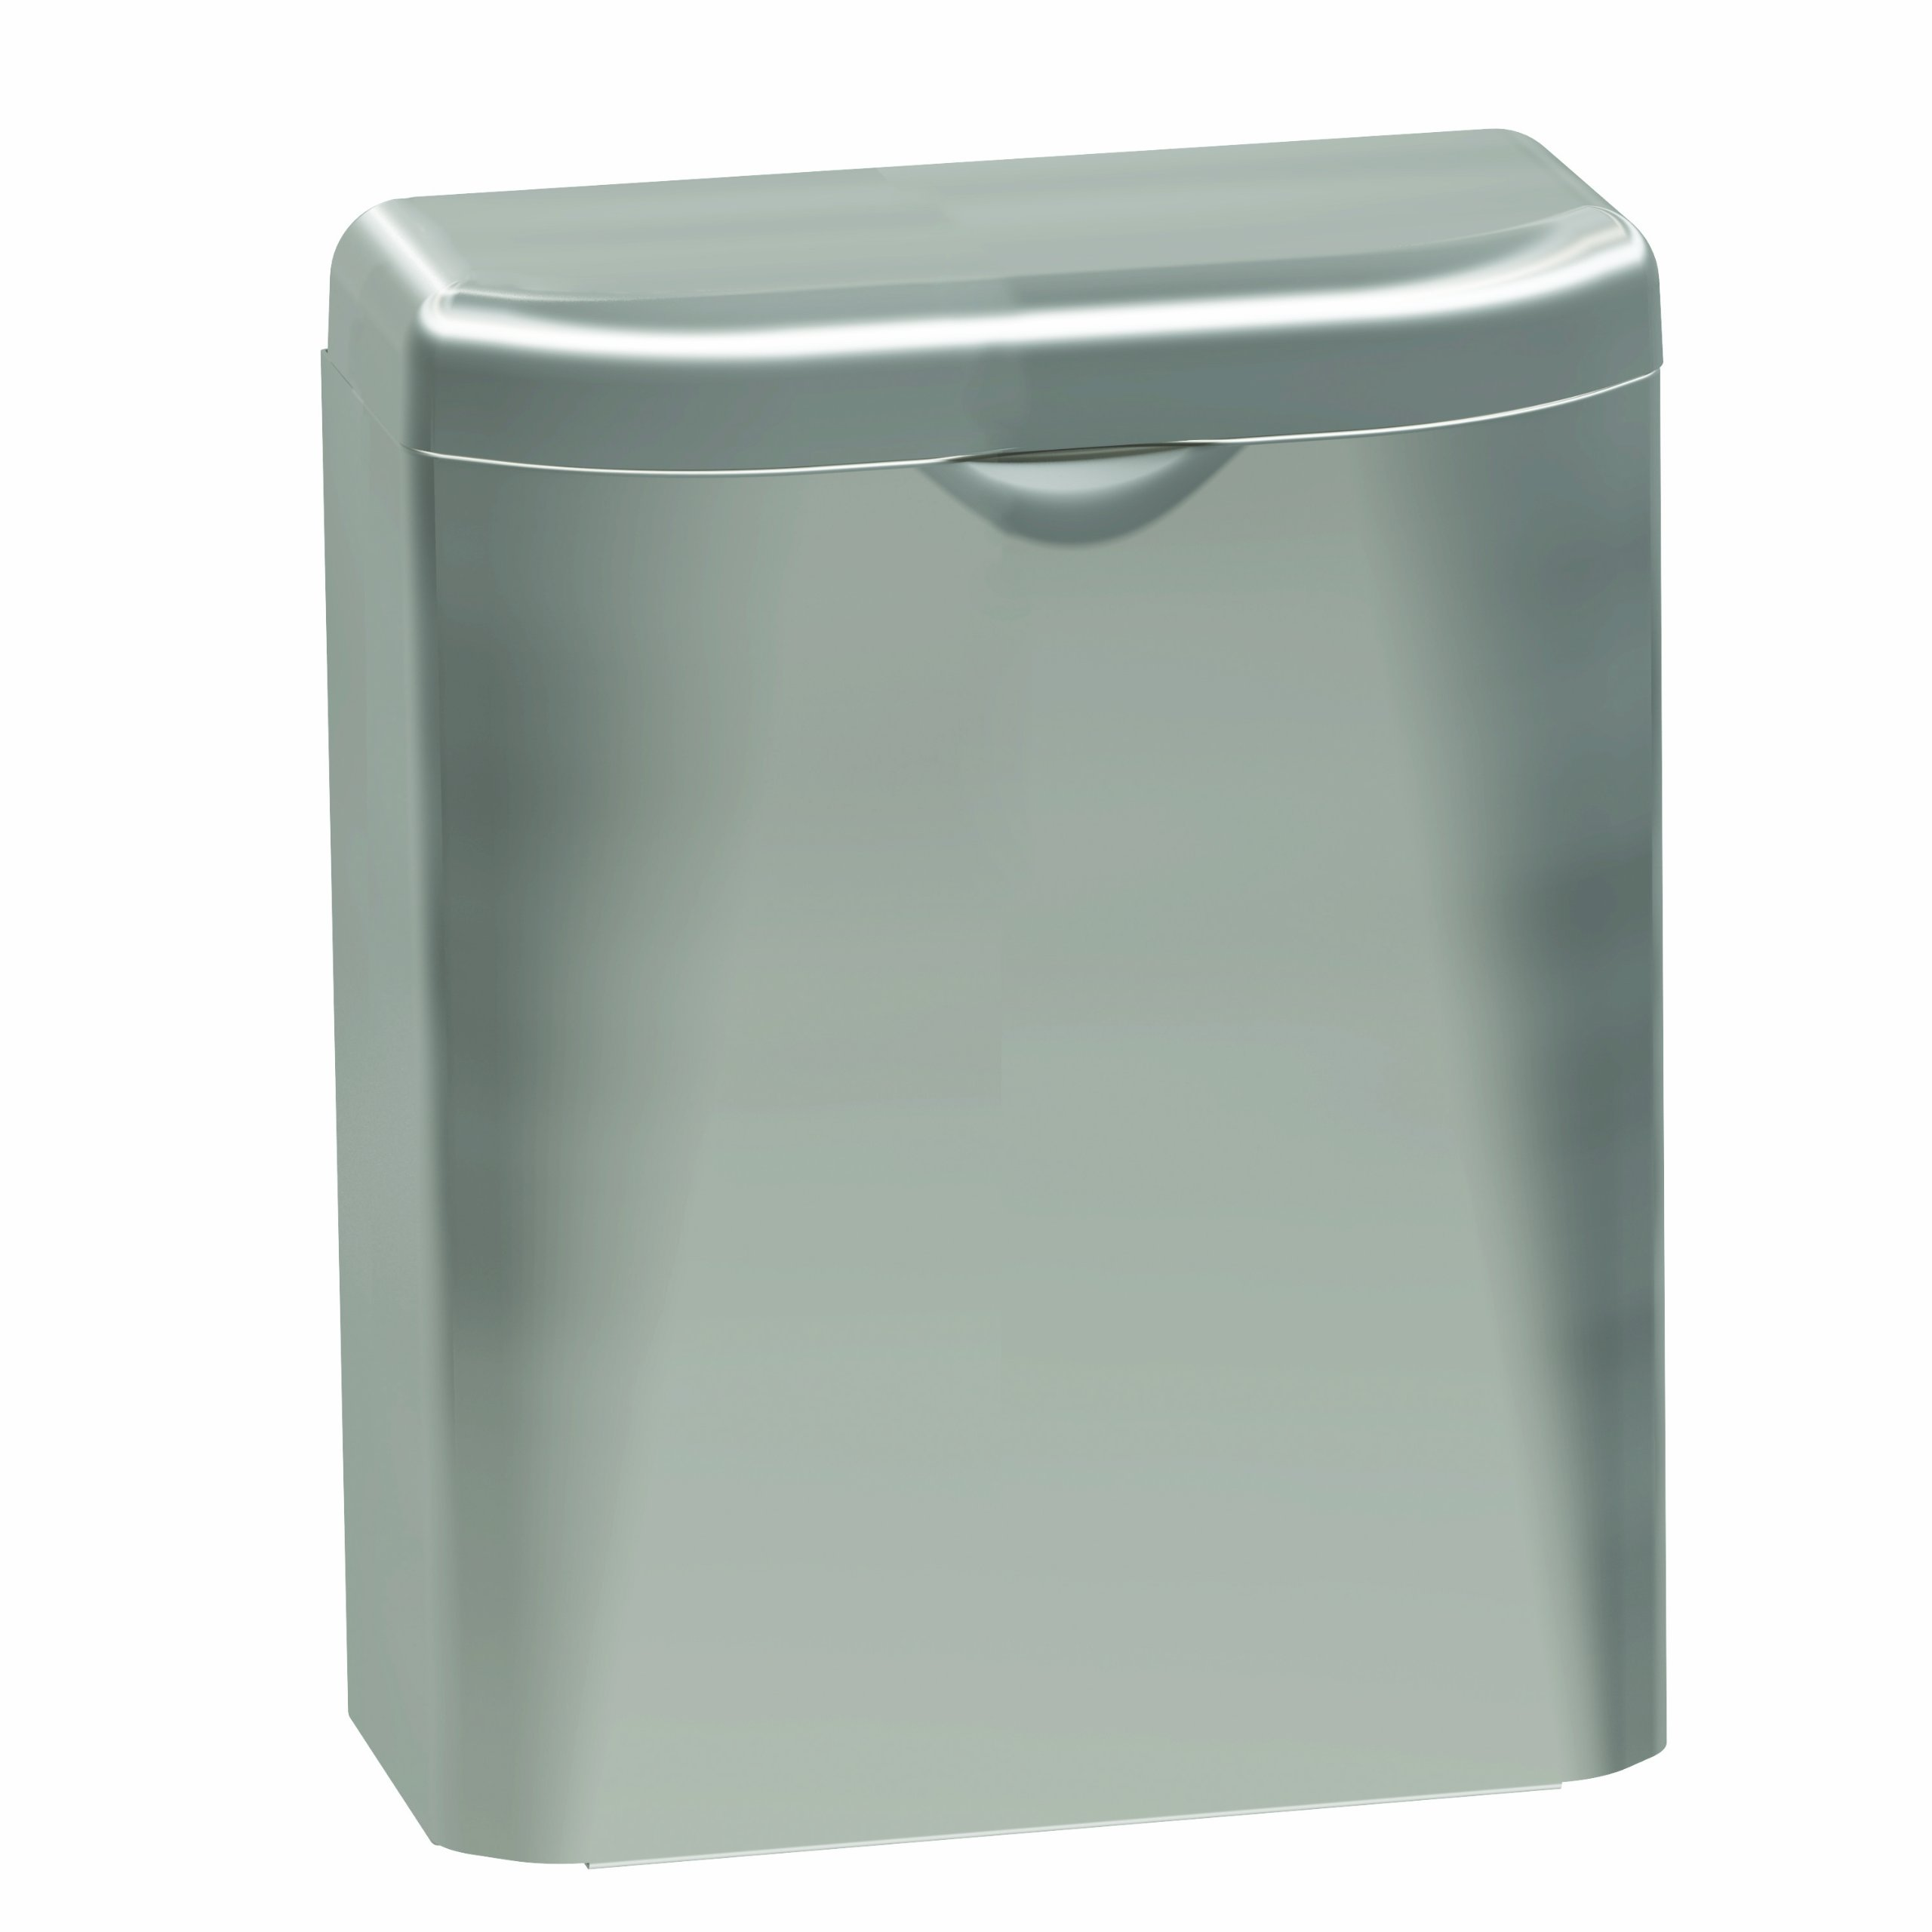 Bradley 4A10-110000 Diplomat Stainless Steel Surface Mounted Napkin Disposal, 8'' Width x 10-1/16'' Height x 3-7/8'' Depth